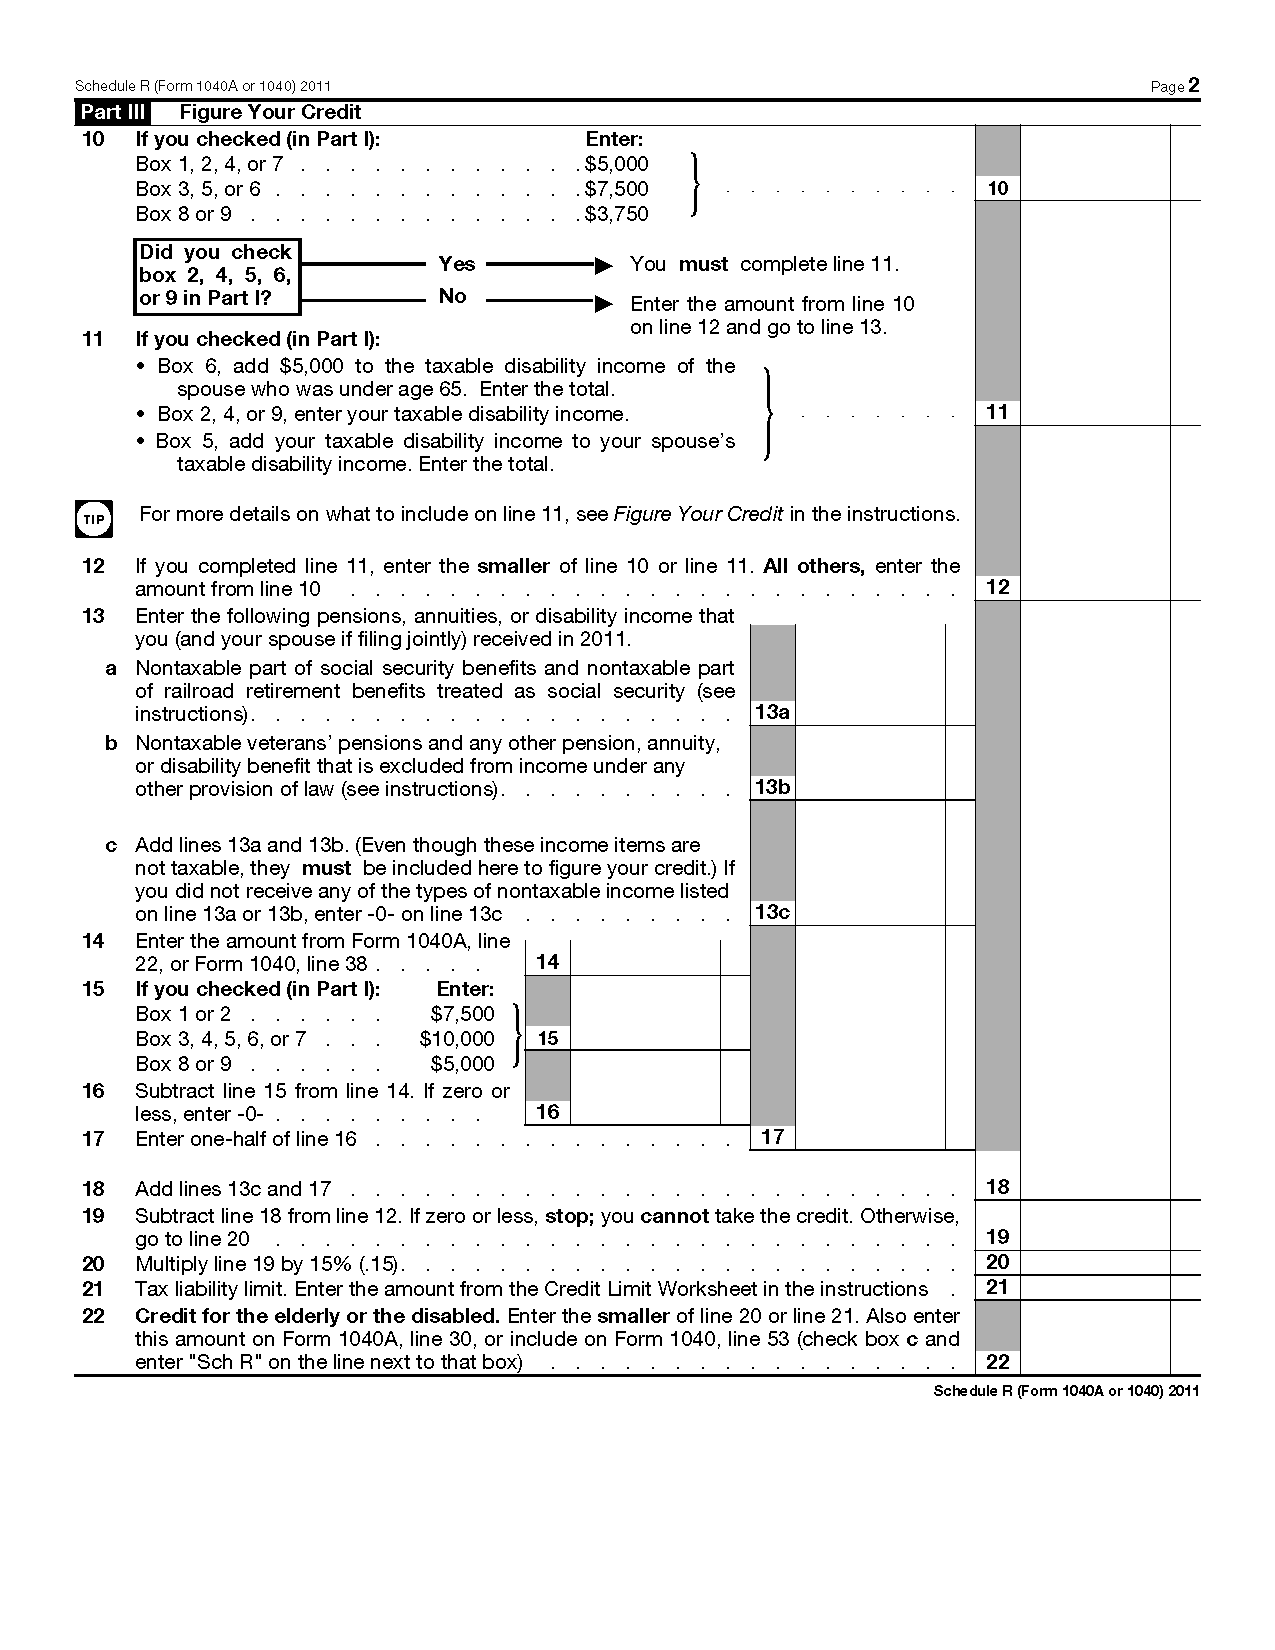 Form 1040 schedule r credit for the elderly or the disabled for 1040a instructions 2011 tax table